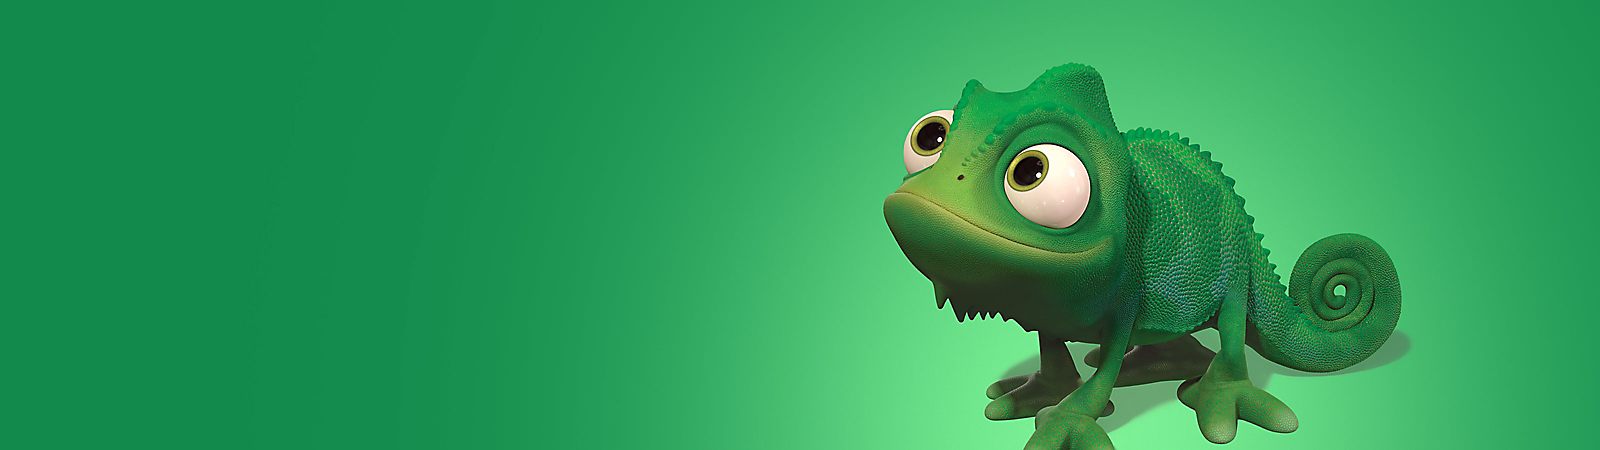 Background image of Pascal